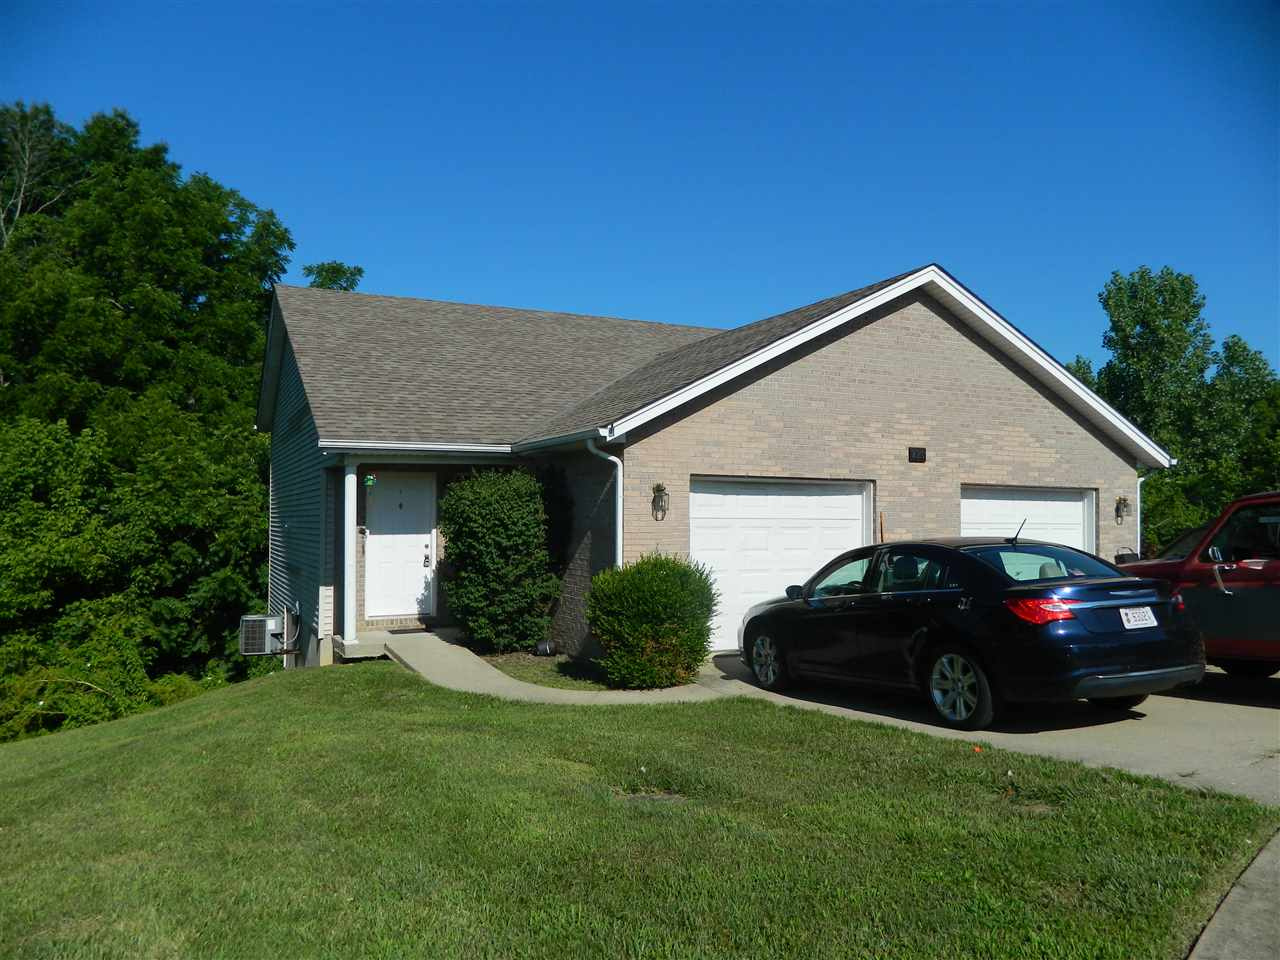 Photo 1 for 220 Crittenden Ct Crittenden, KY 41030